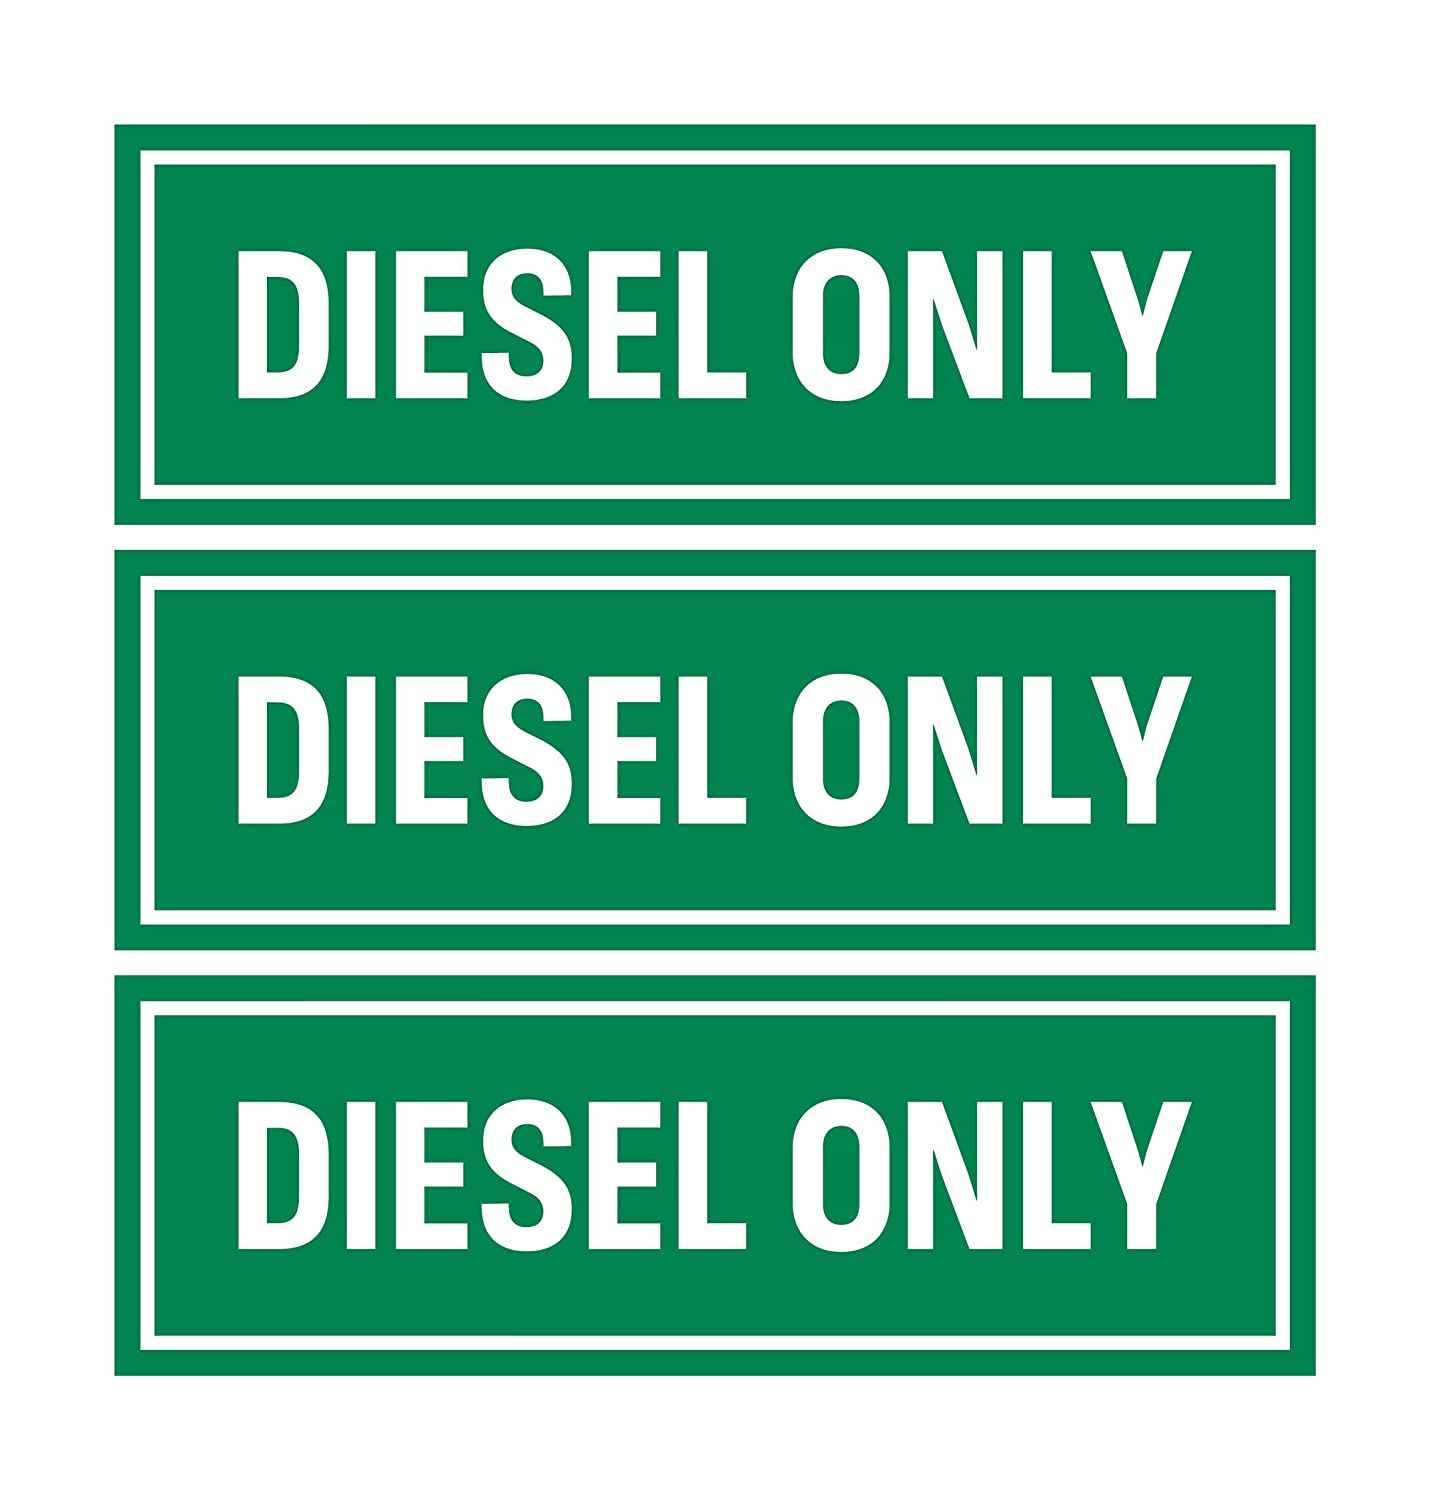 Machinery and Equipment Diesel Only Sticker Sign | Adhesive Fuel Decal for Trucks Tractors Pack of 3